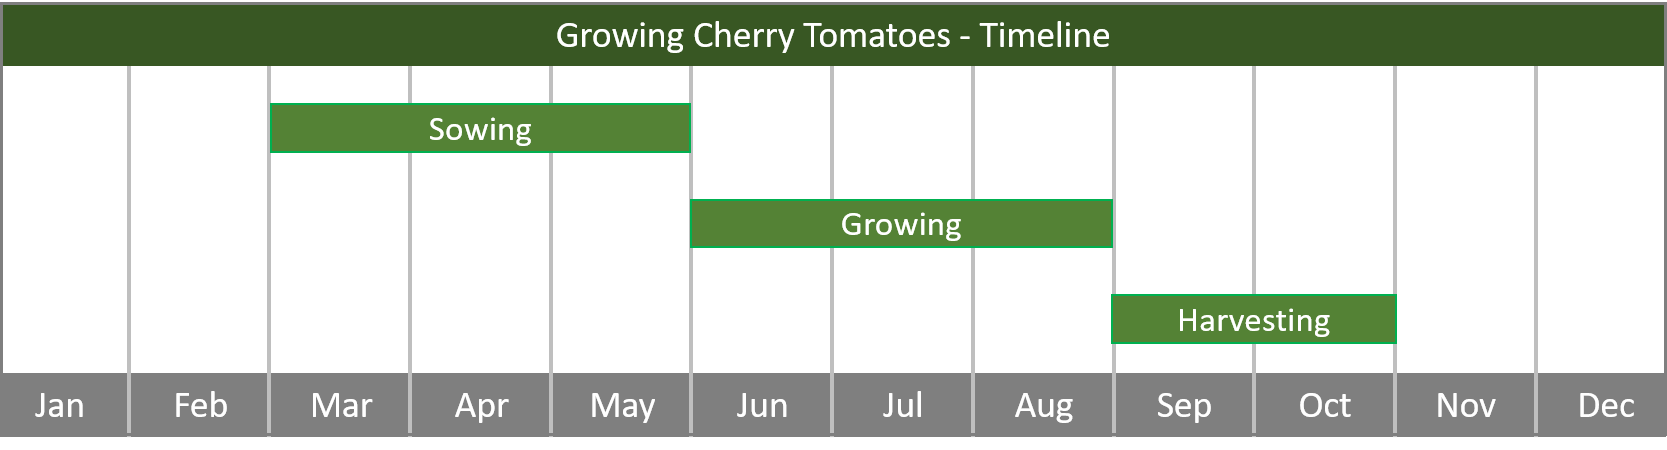 how to grow cherry tomatoes from seed to harvest at home timeline